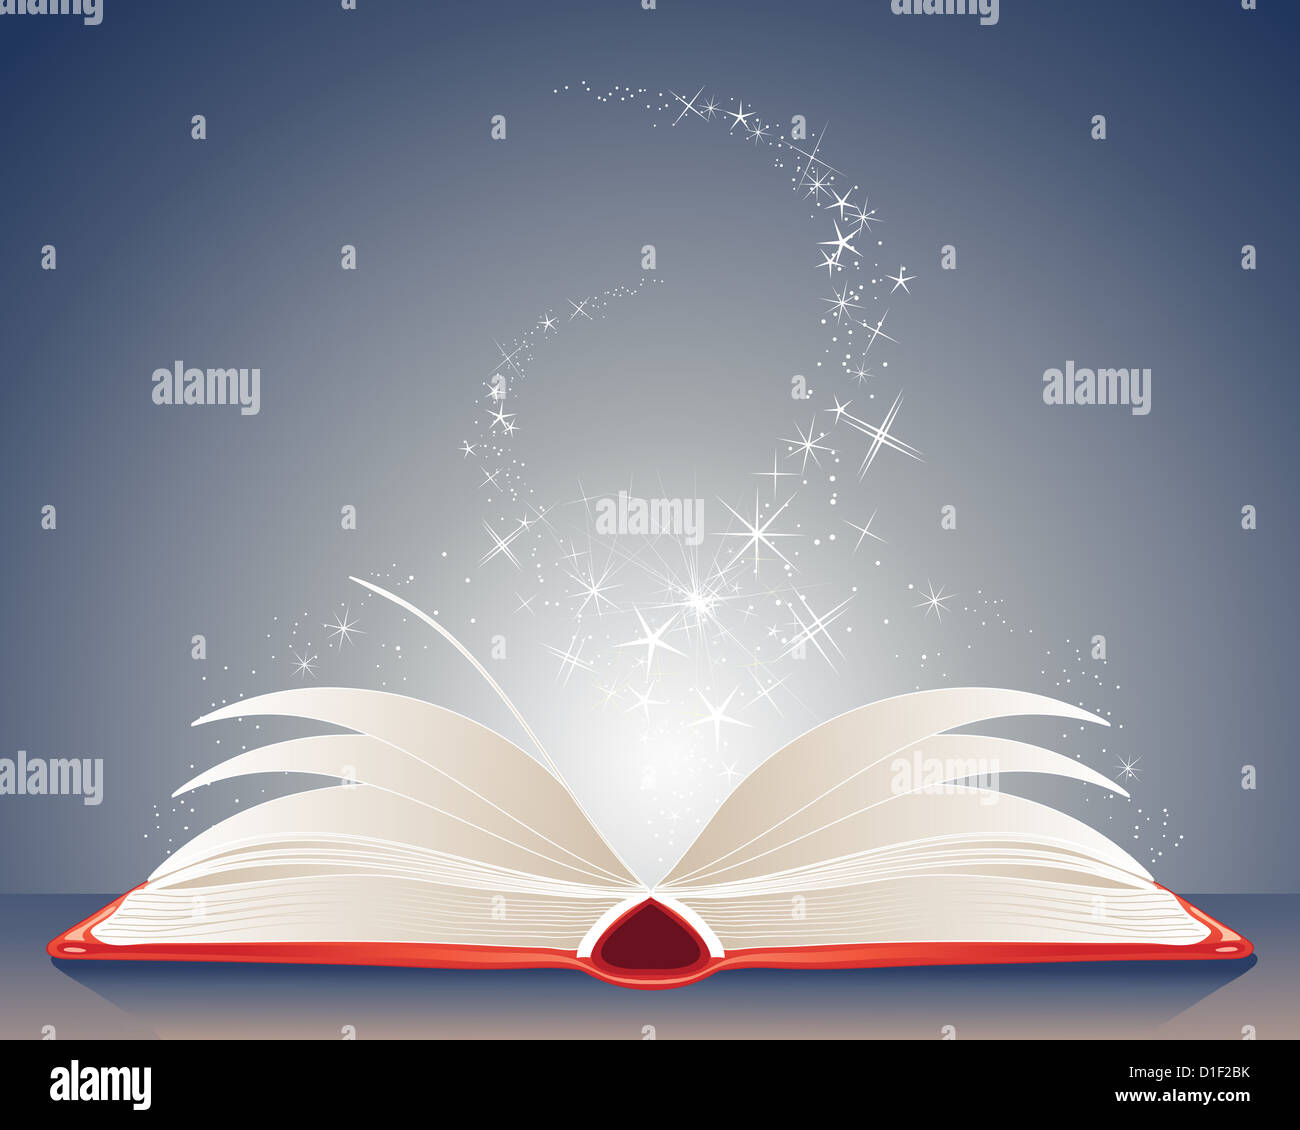 an illustration of a bright red magic book of spells open on a table with stars and sparkles on a dark blue background - Stock Image